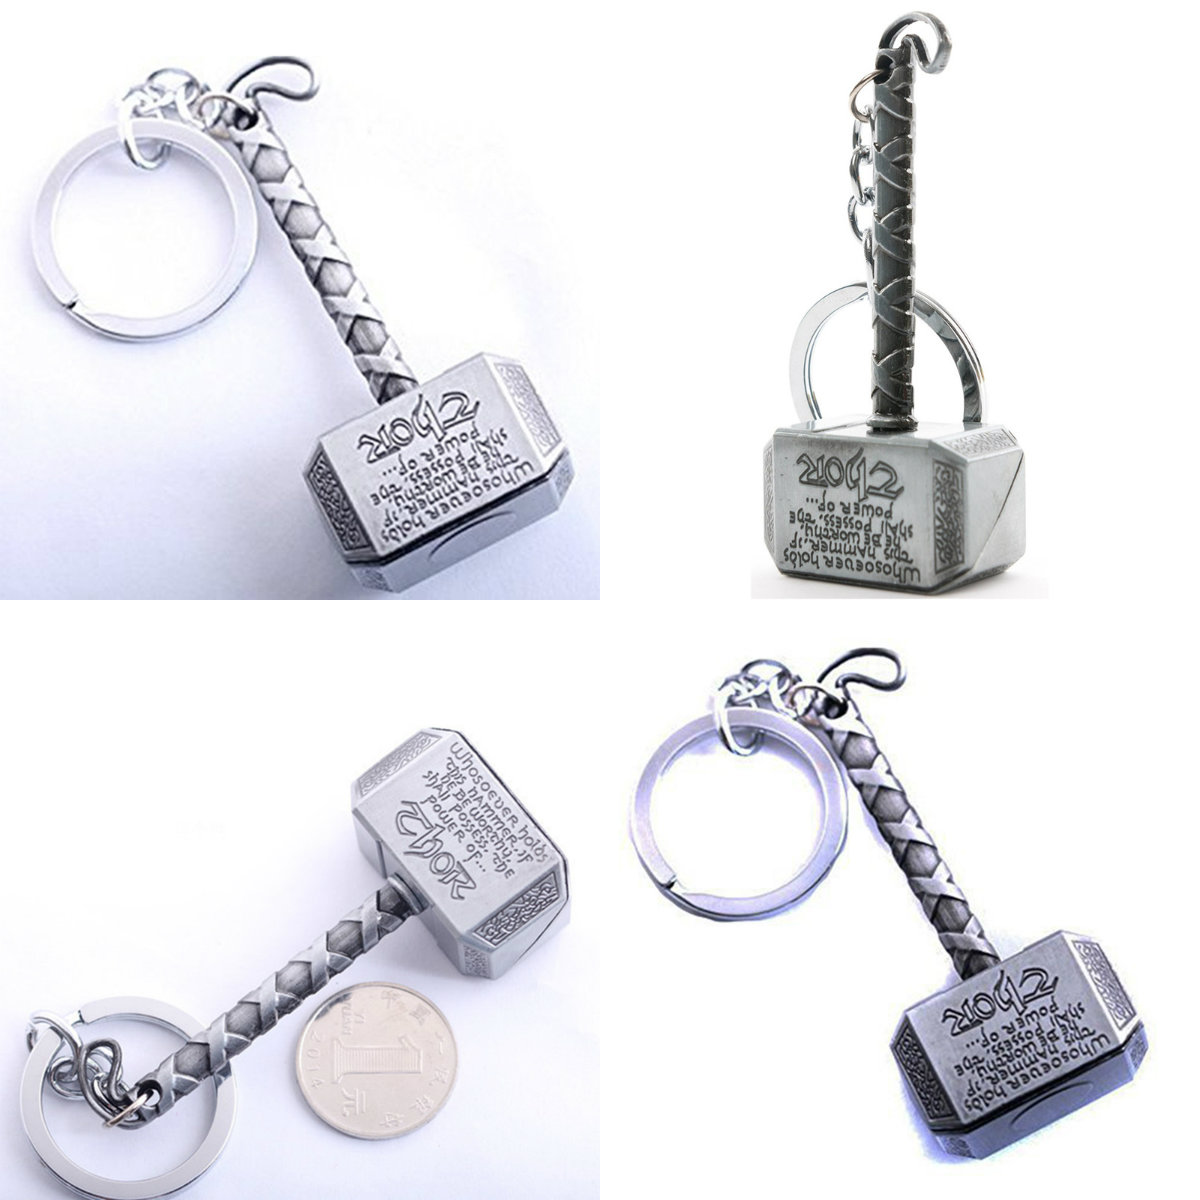 1PCS Men Jewelry Fans Accessory Marvel Avengers Thor's Hammer Mjolnir Keychain New Pewter Keyring Toy Thor Chain Ring Key